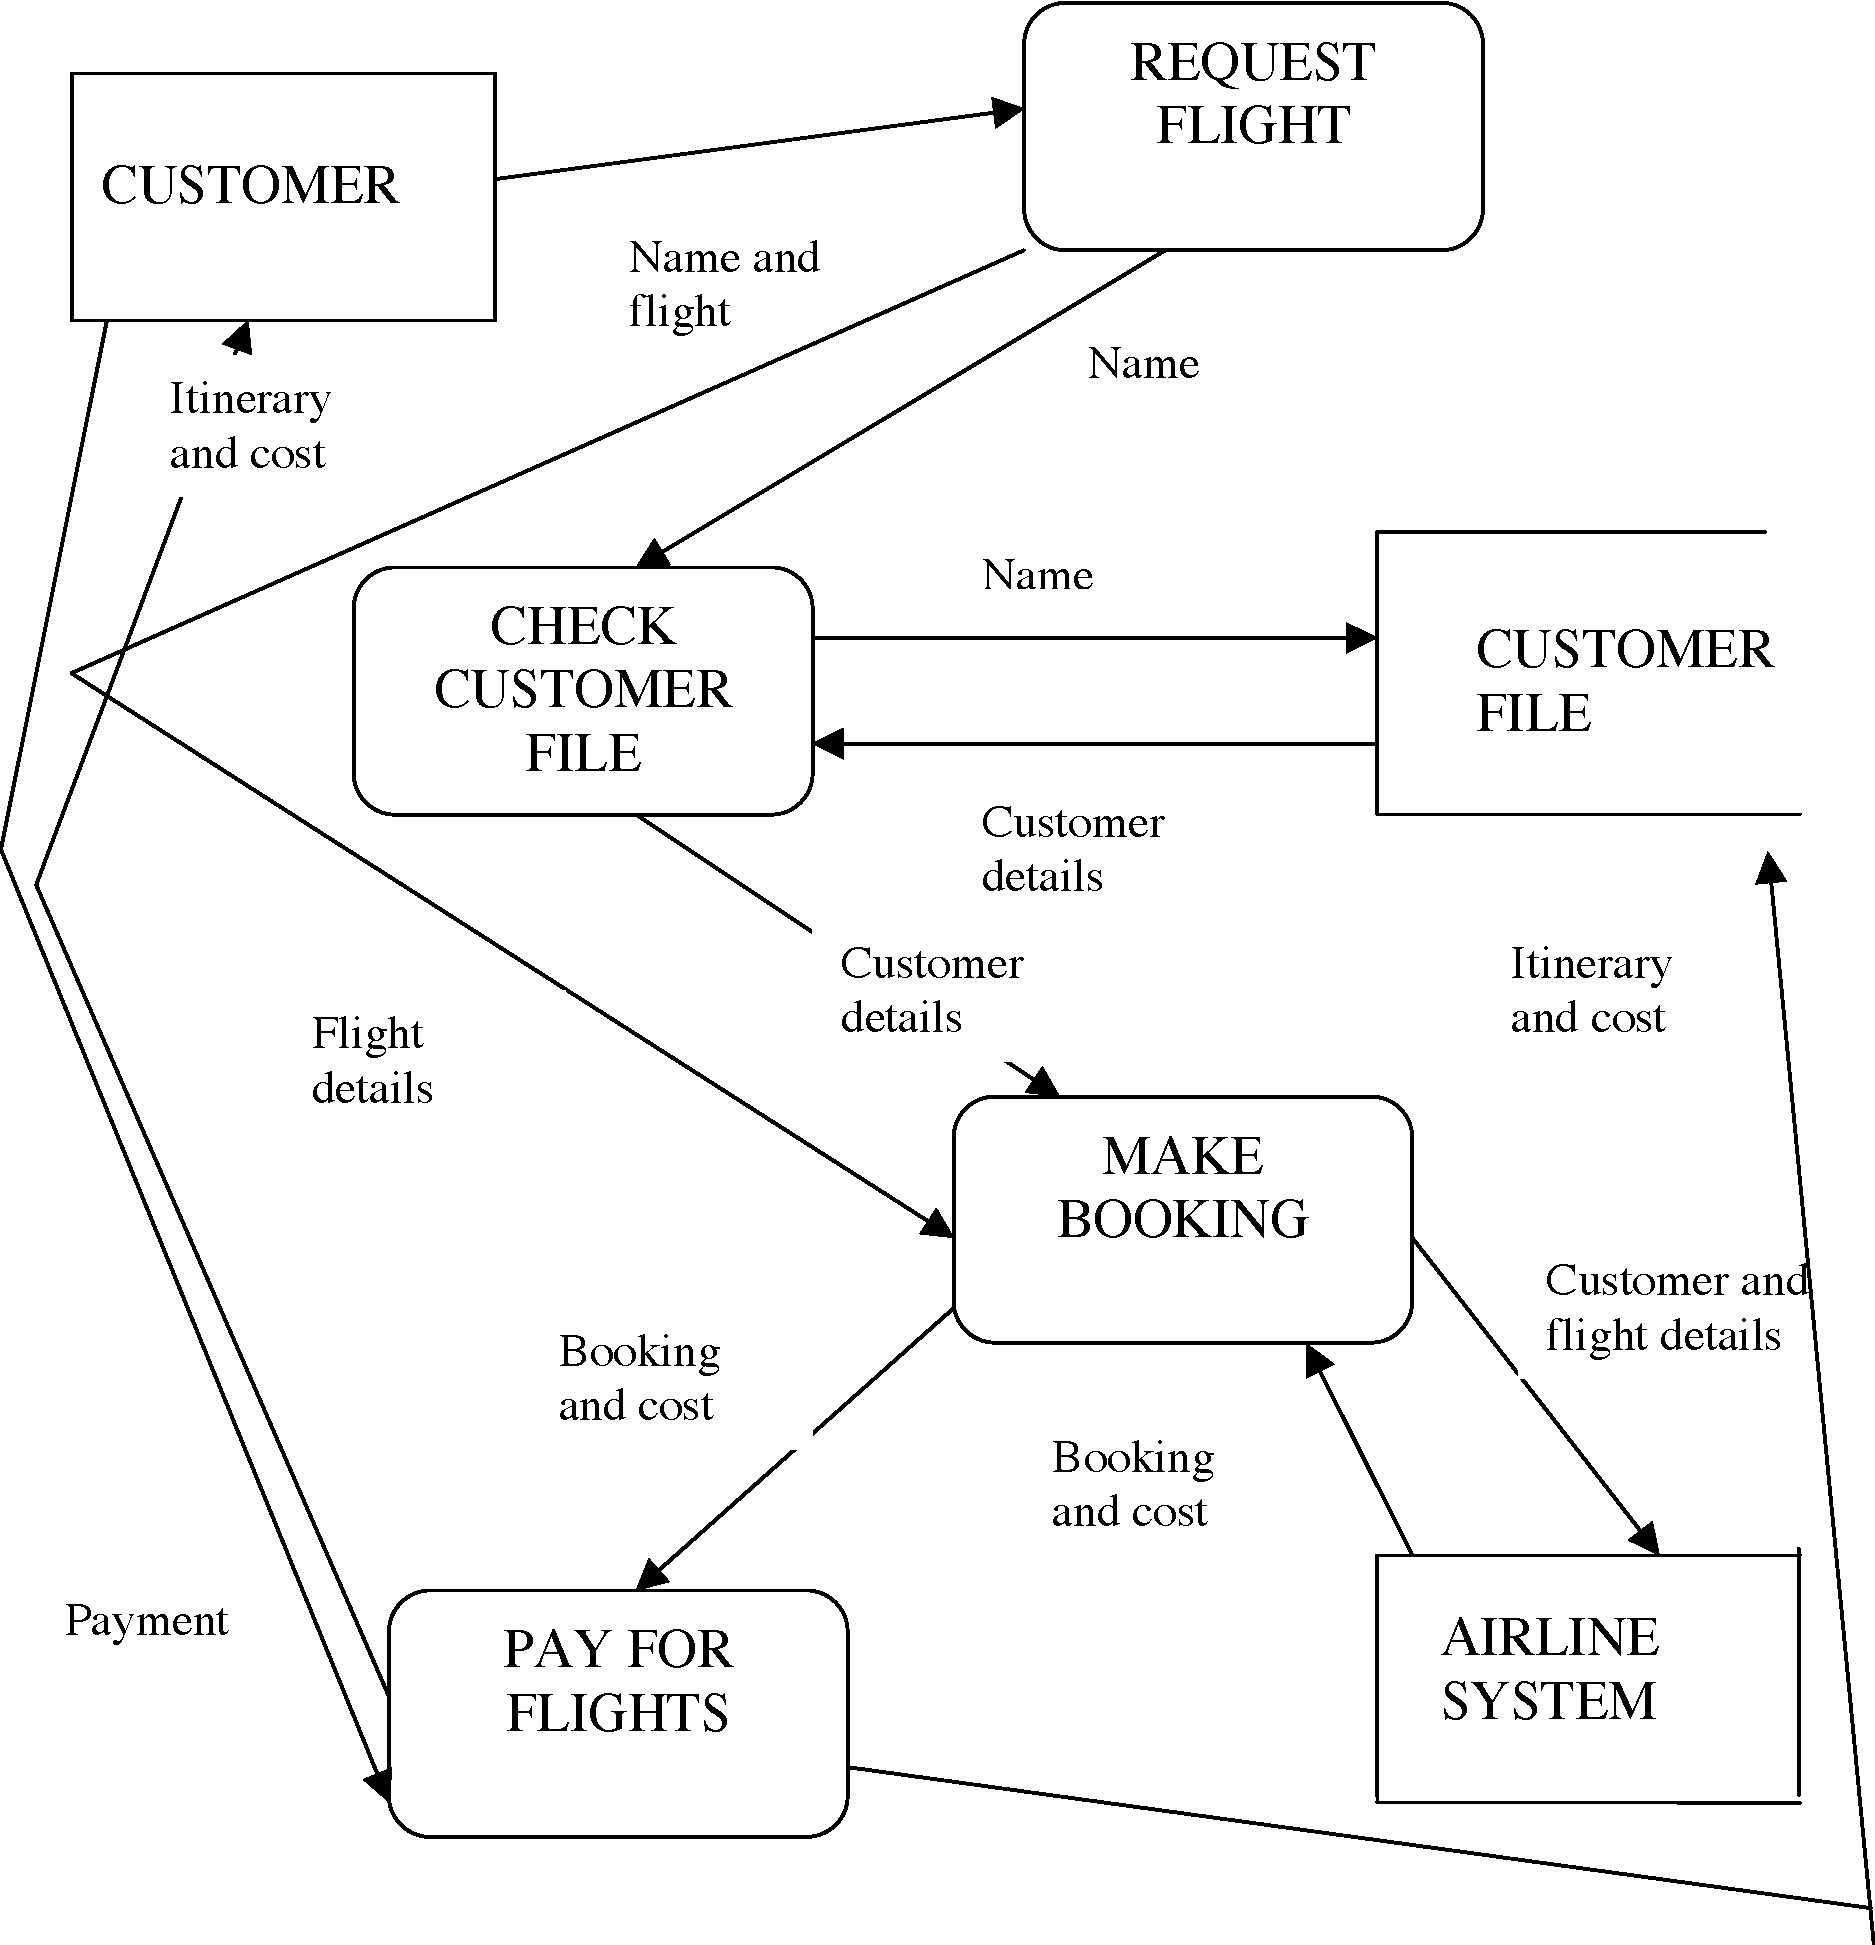 E238 Information Systems Tee 2003 Answers with Er Diagram Examples For Travel Agency